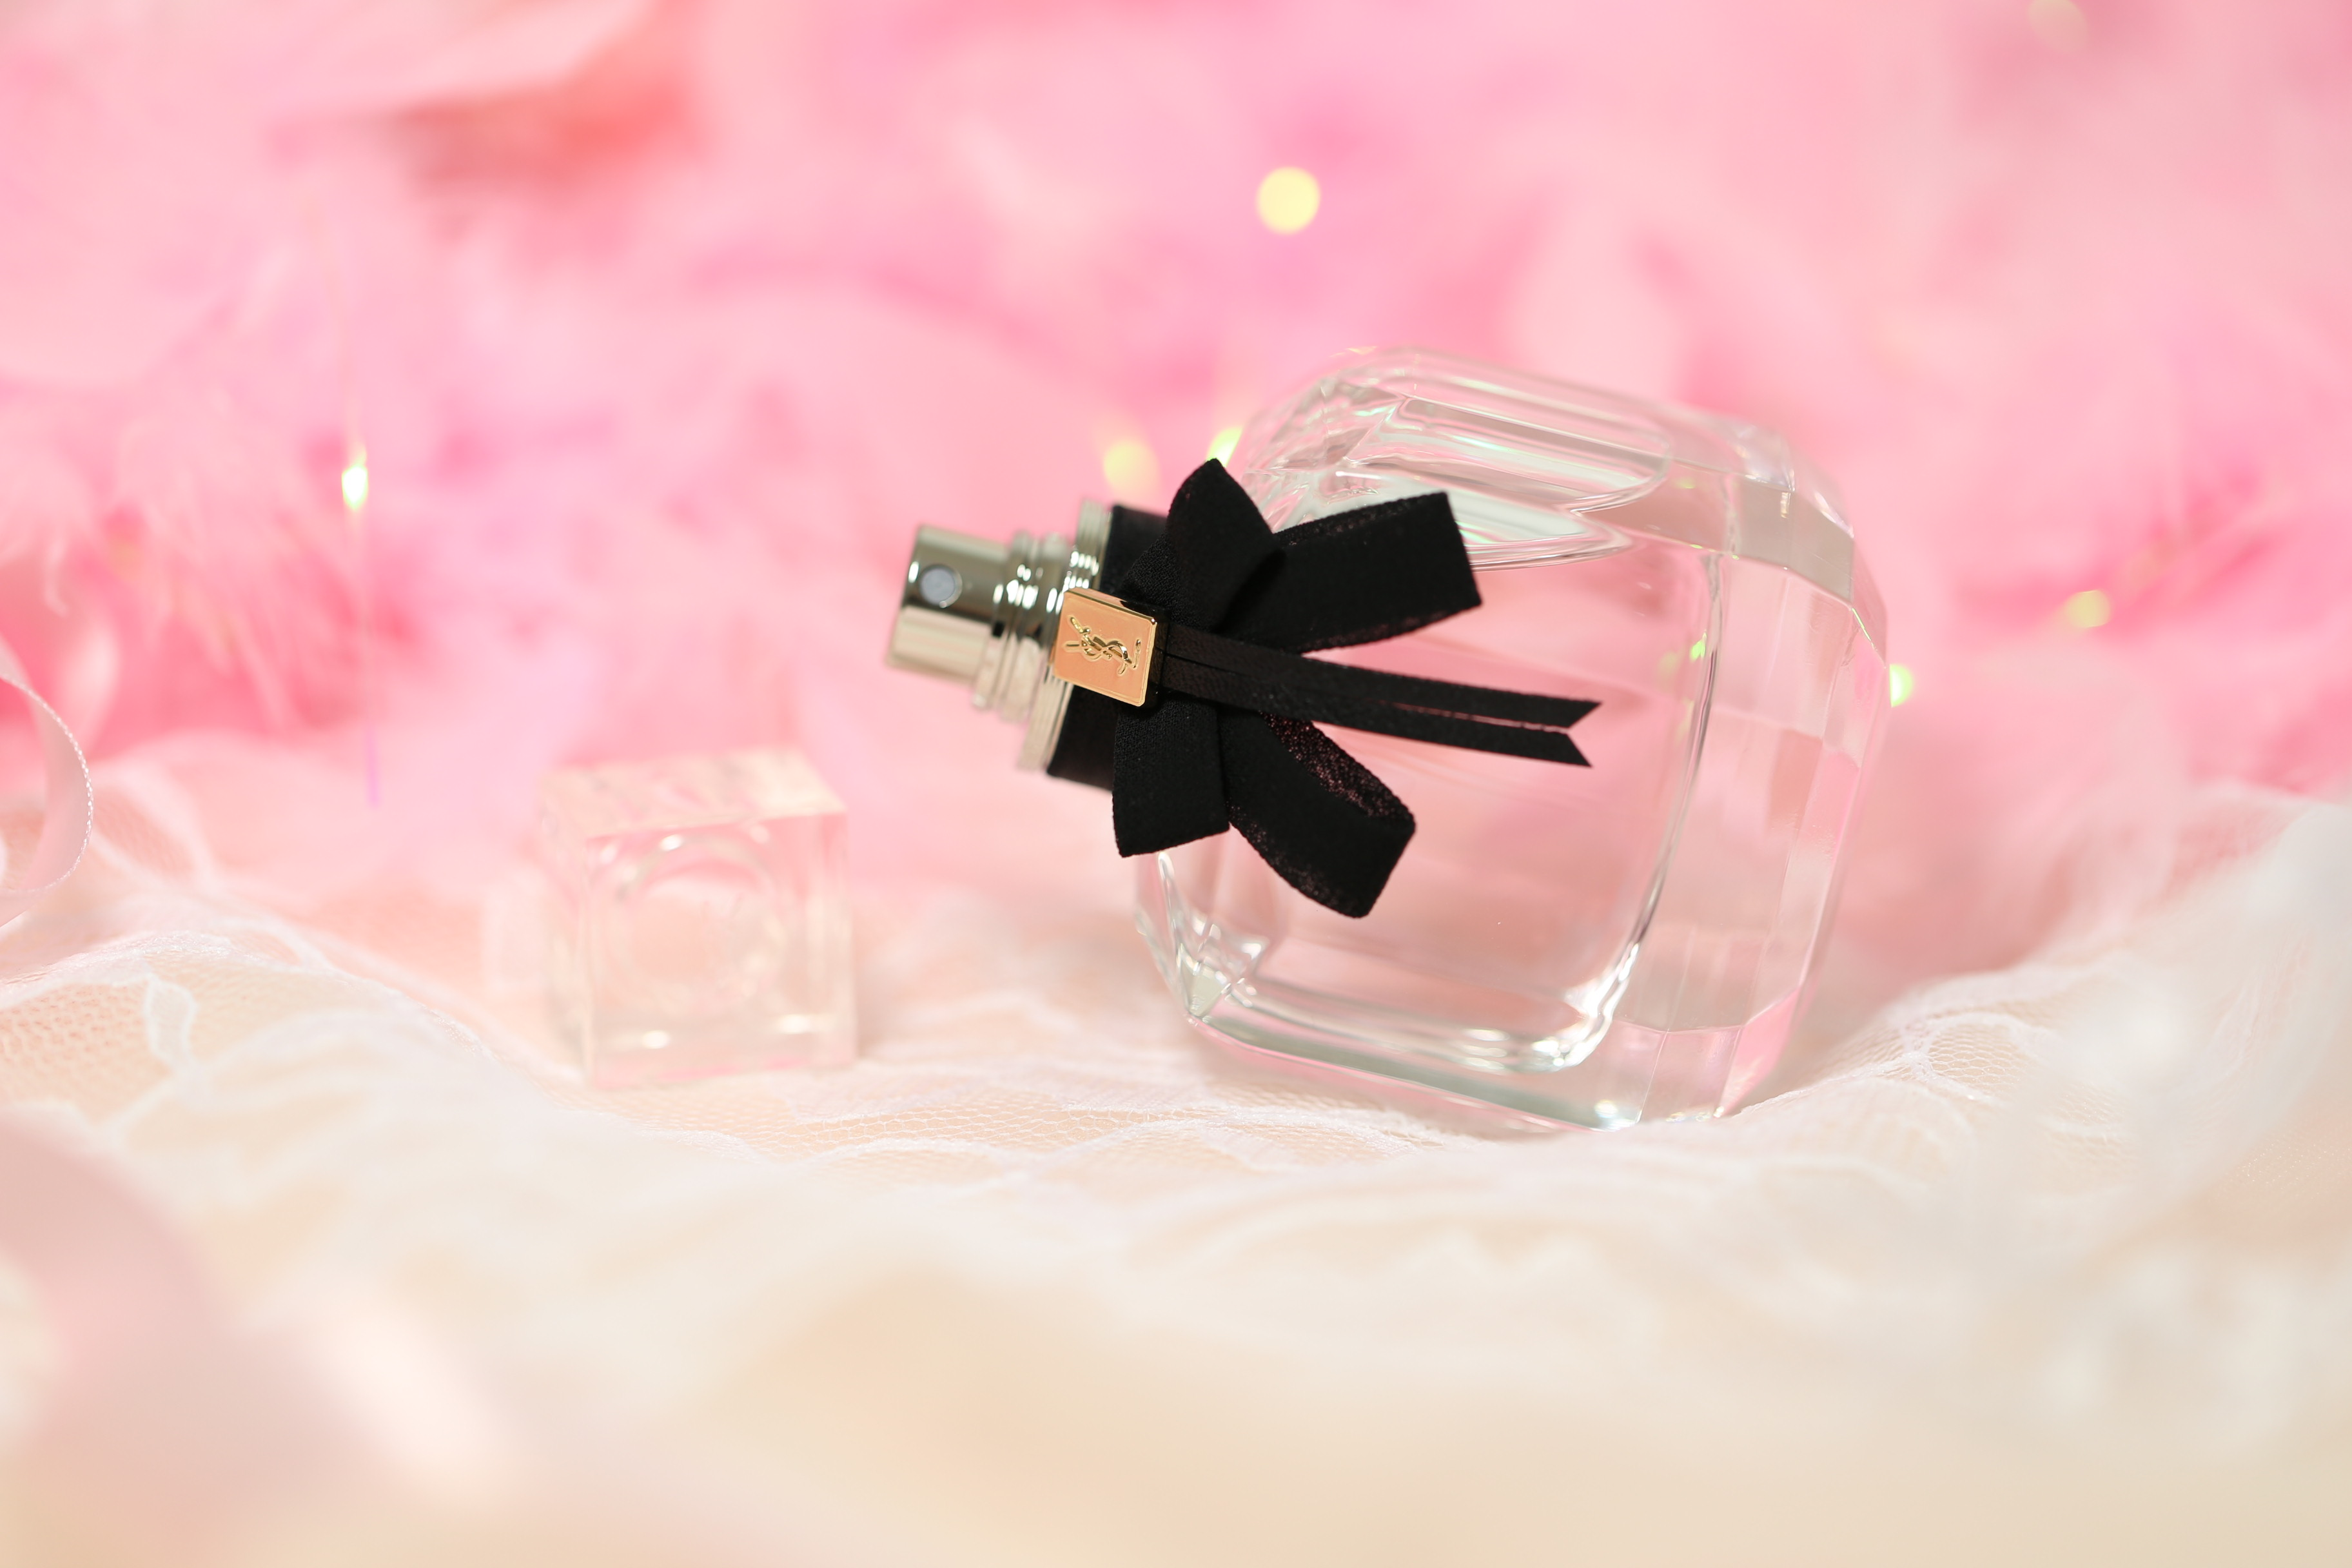 3 Heavenly Perfumes That You Will Absolutely LOVE